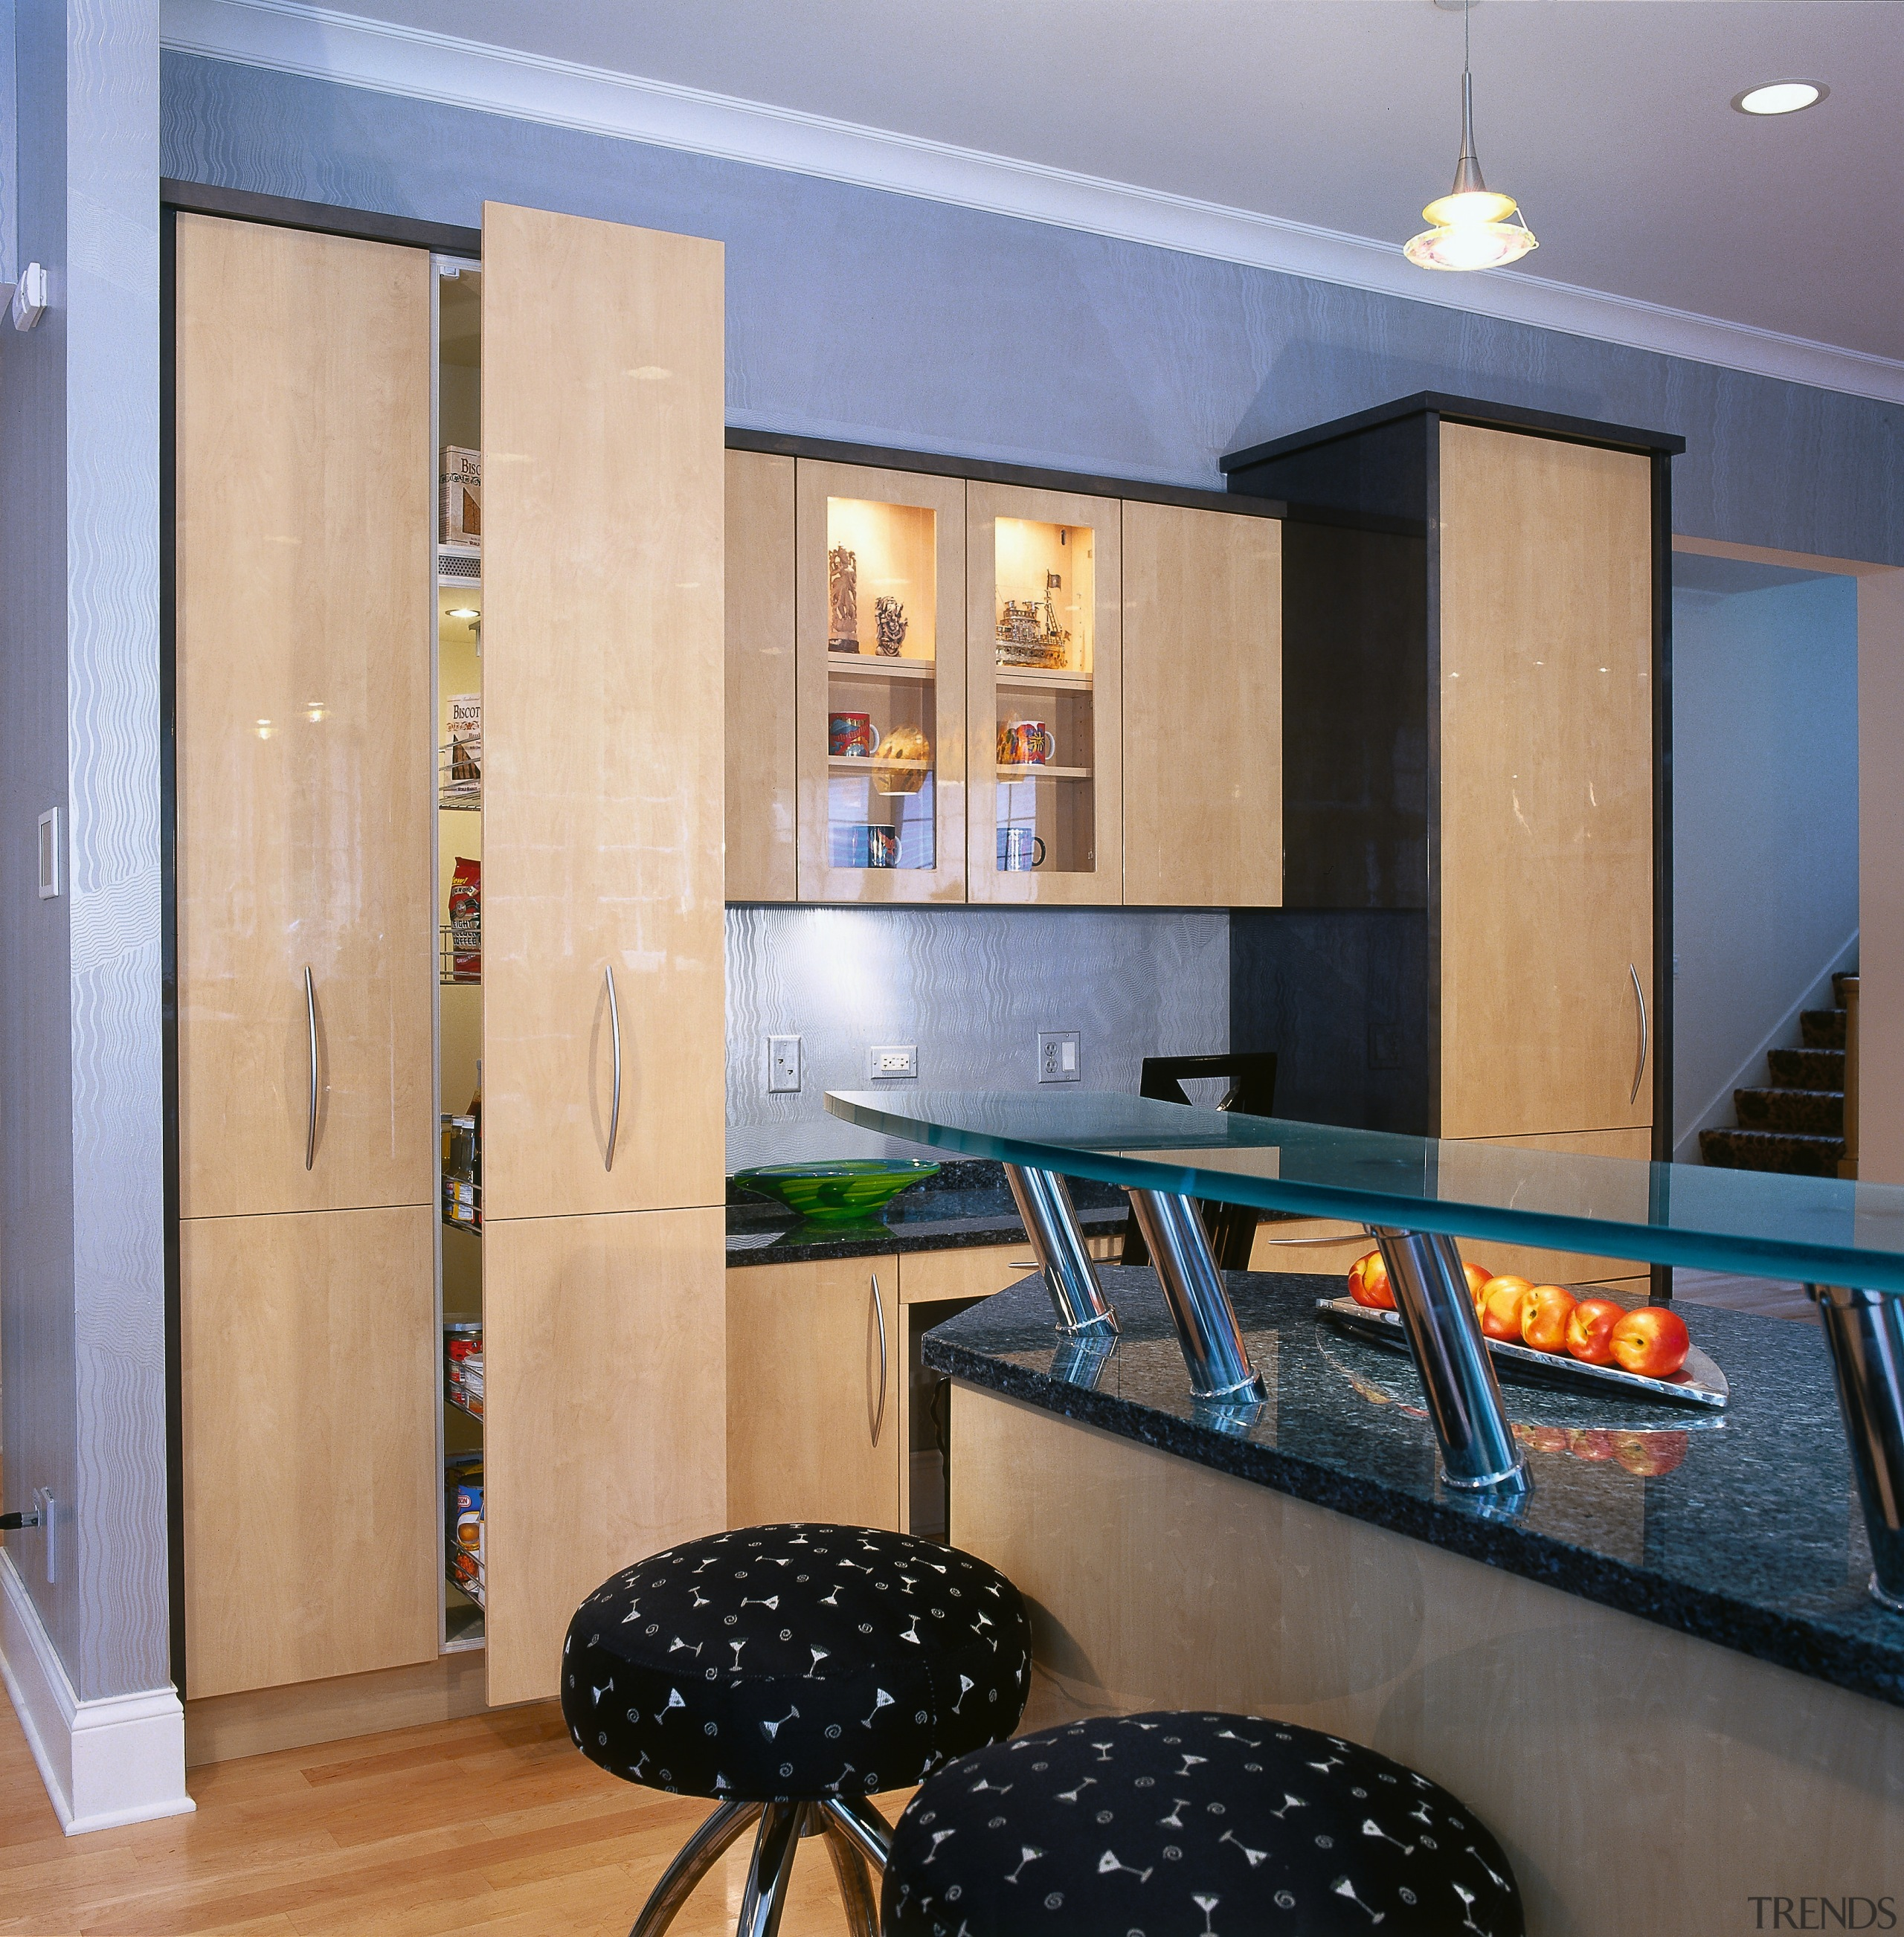 Close view of the kitchen's cabinetry - Close ceiling, countertop, floor, flooring, interior design, kitchen, living room, room, wall, orange